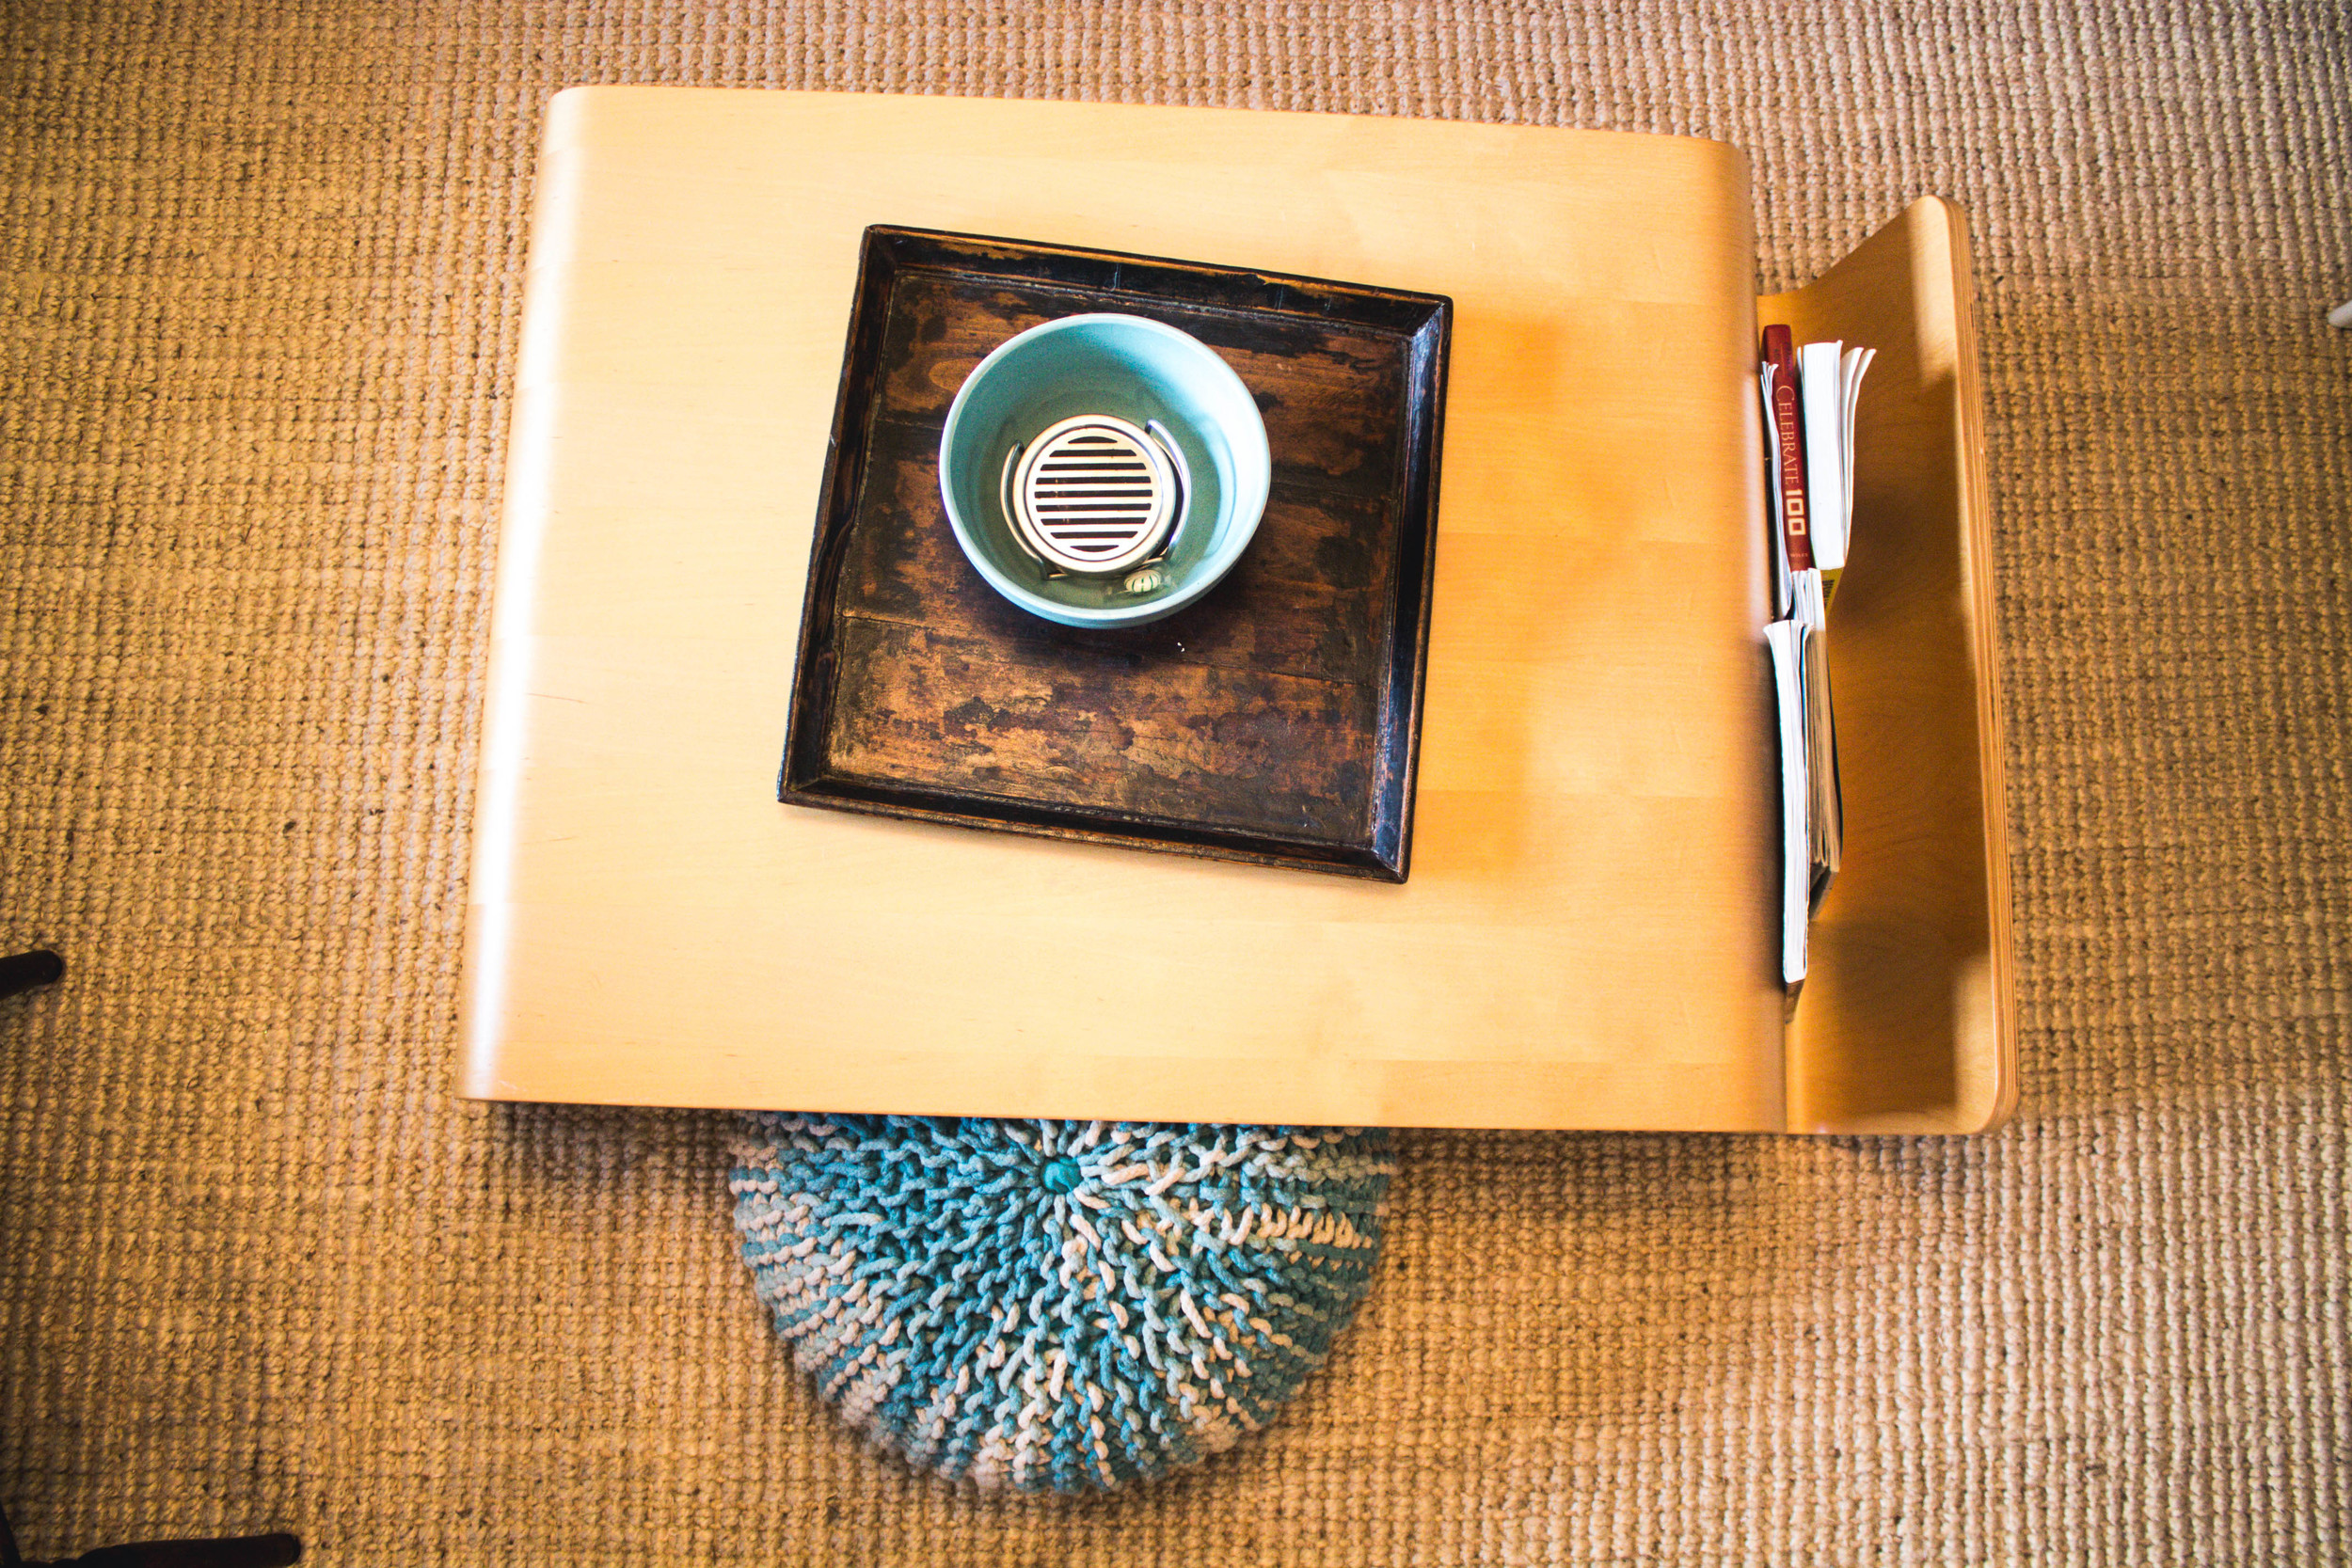 The coffee table is from AllModern and houses magazines and a small pouf for extra seating.